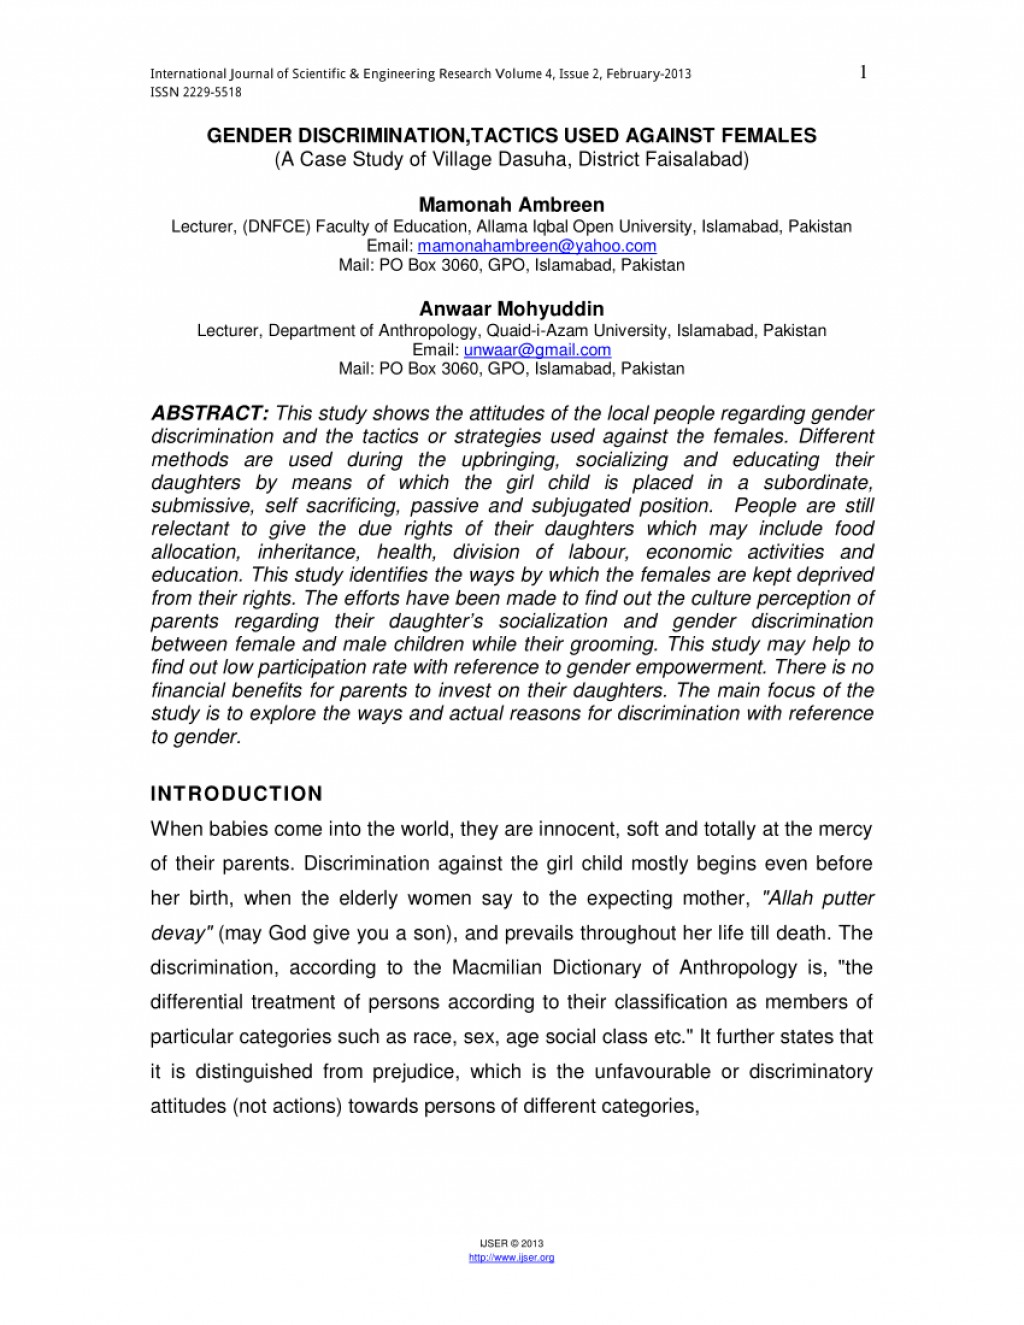 002 Discrimination In Education Research Paper Pdf Amazing Large